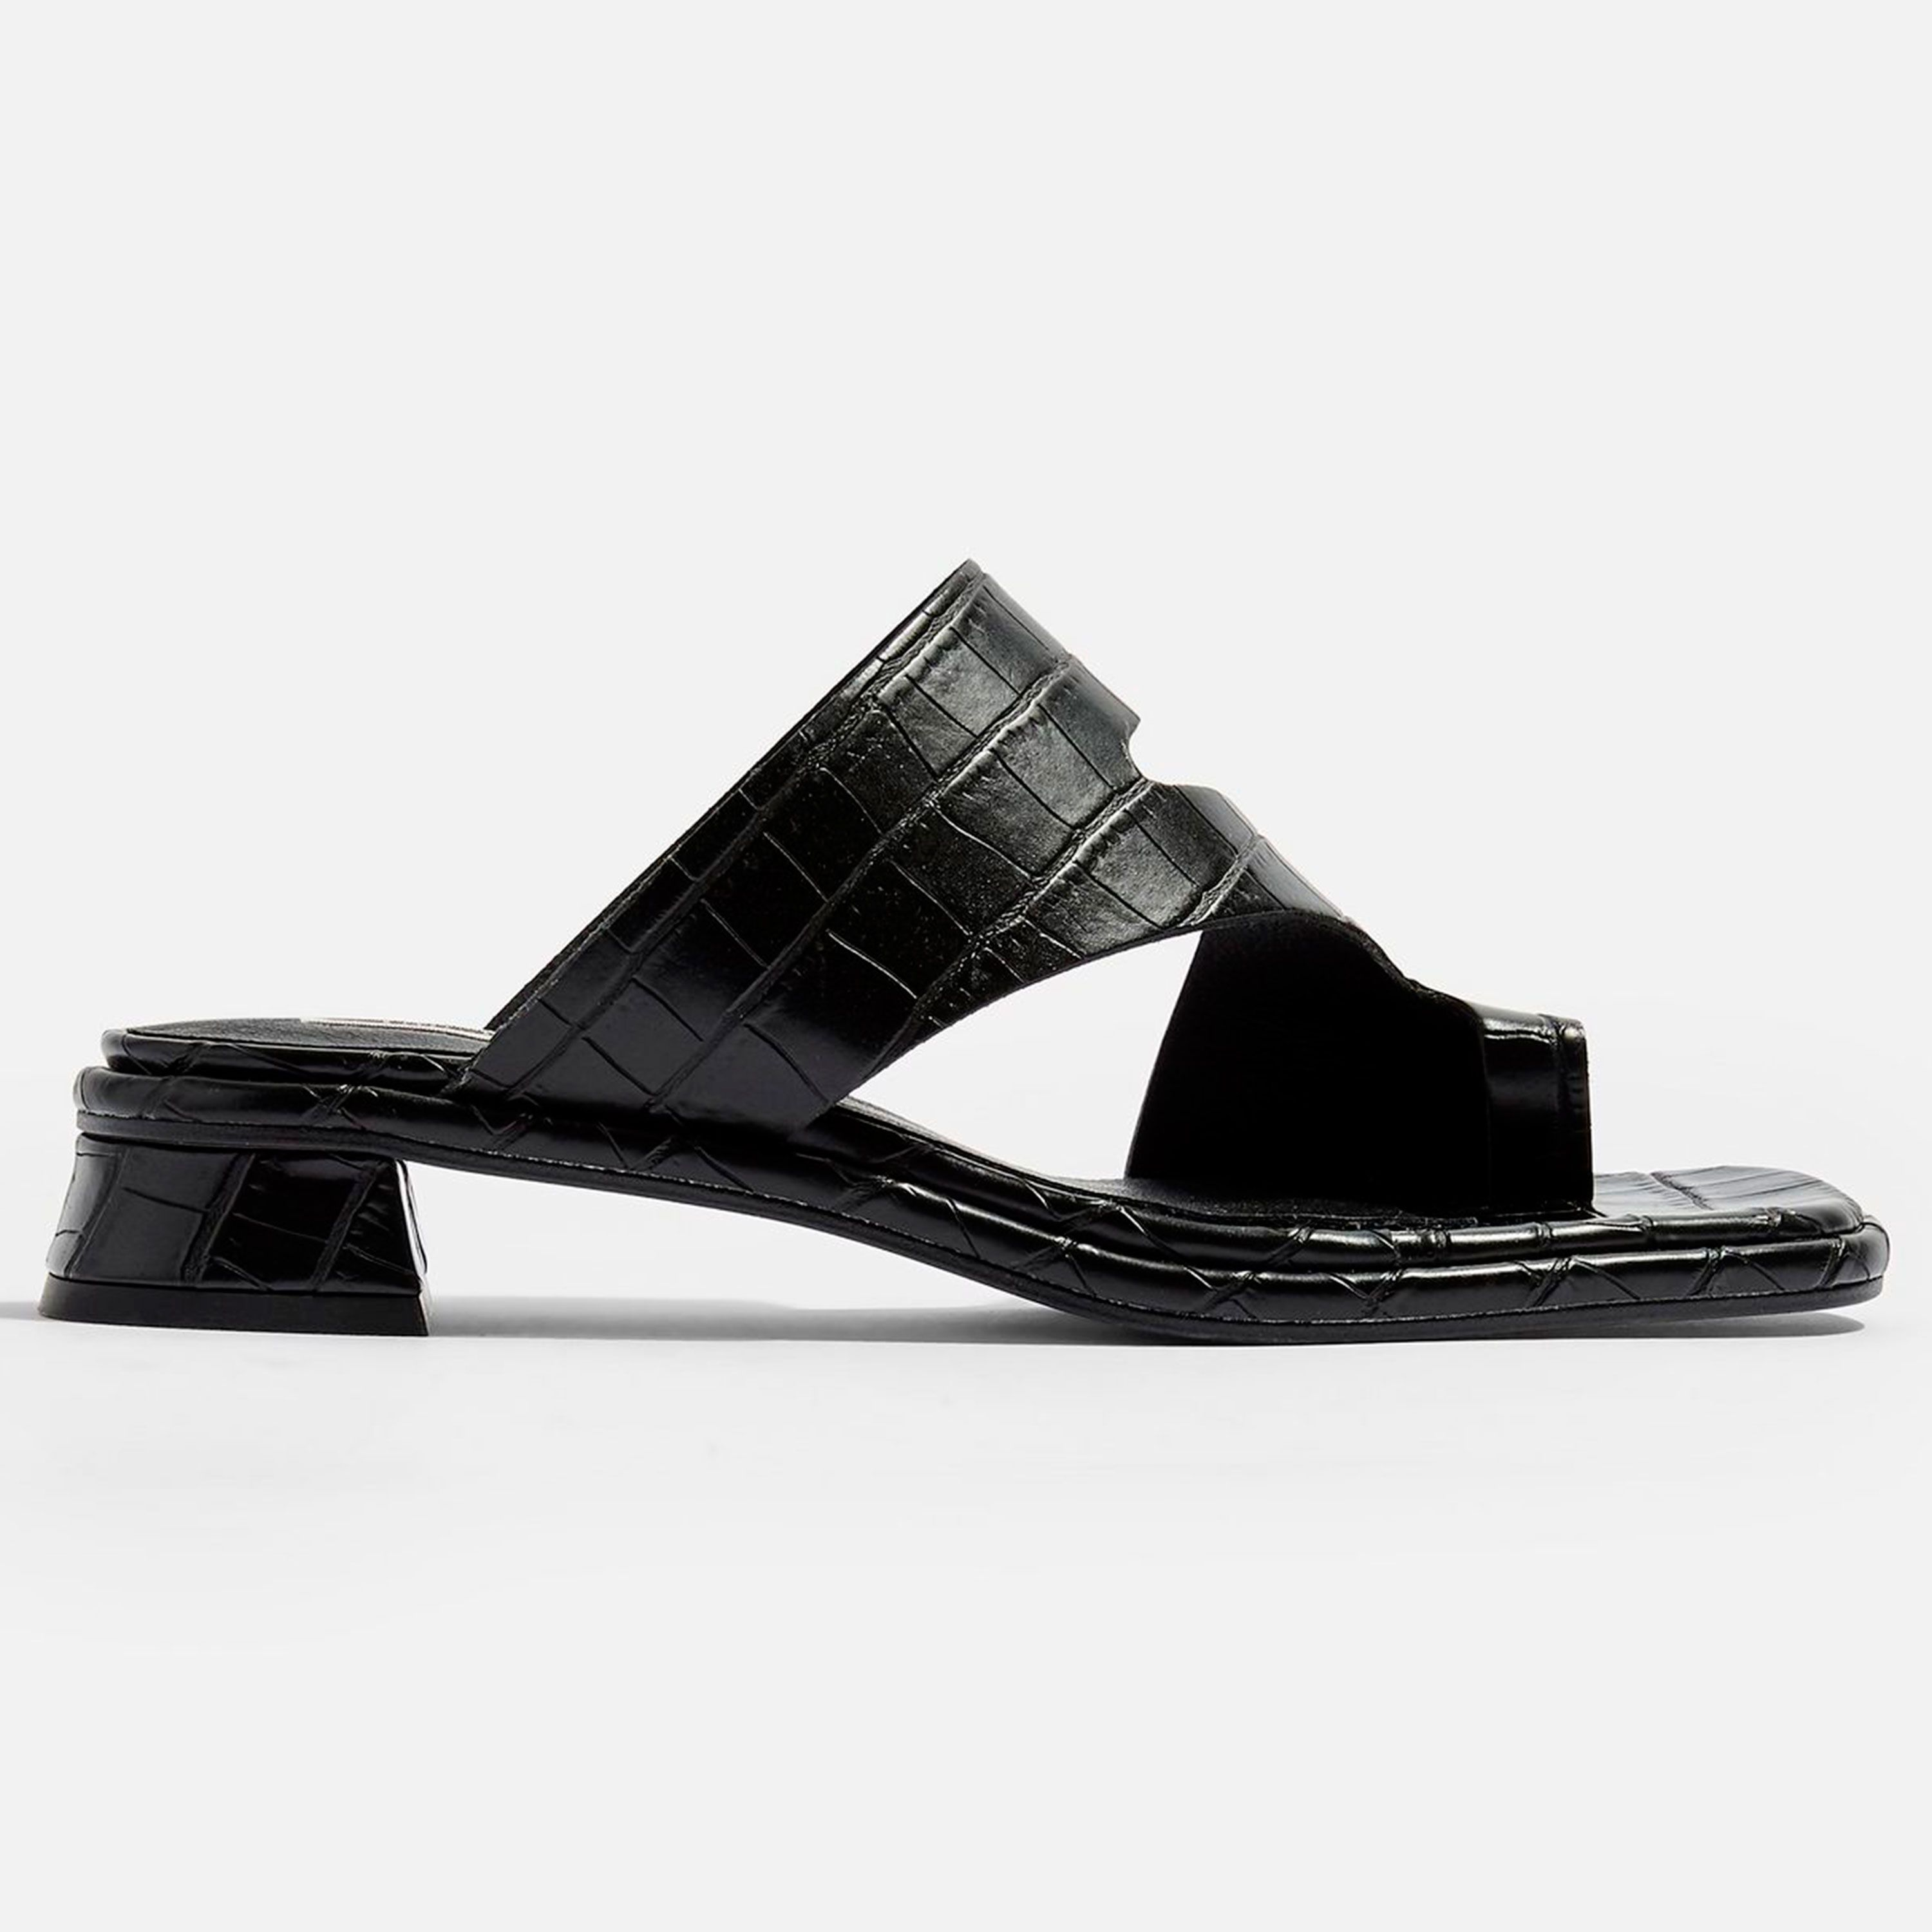 Topshop's vegan shoes